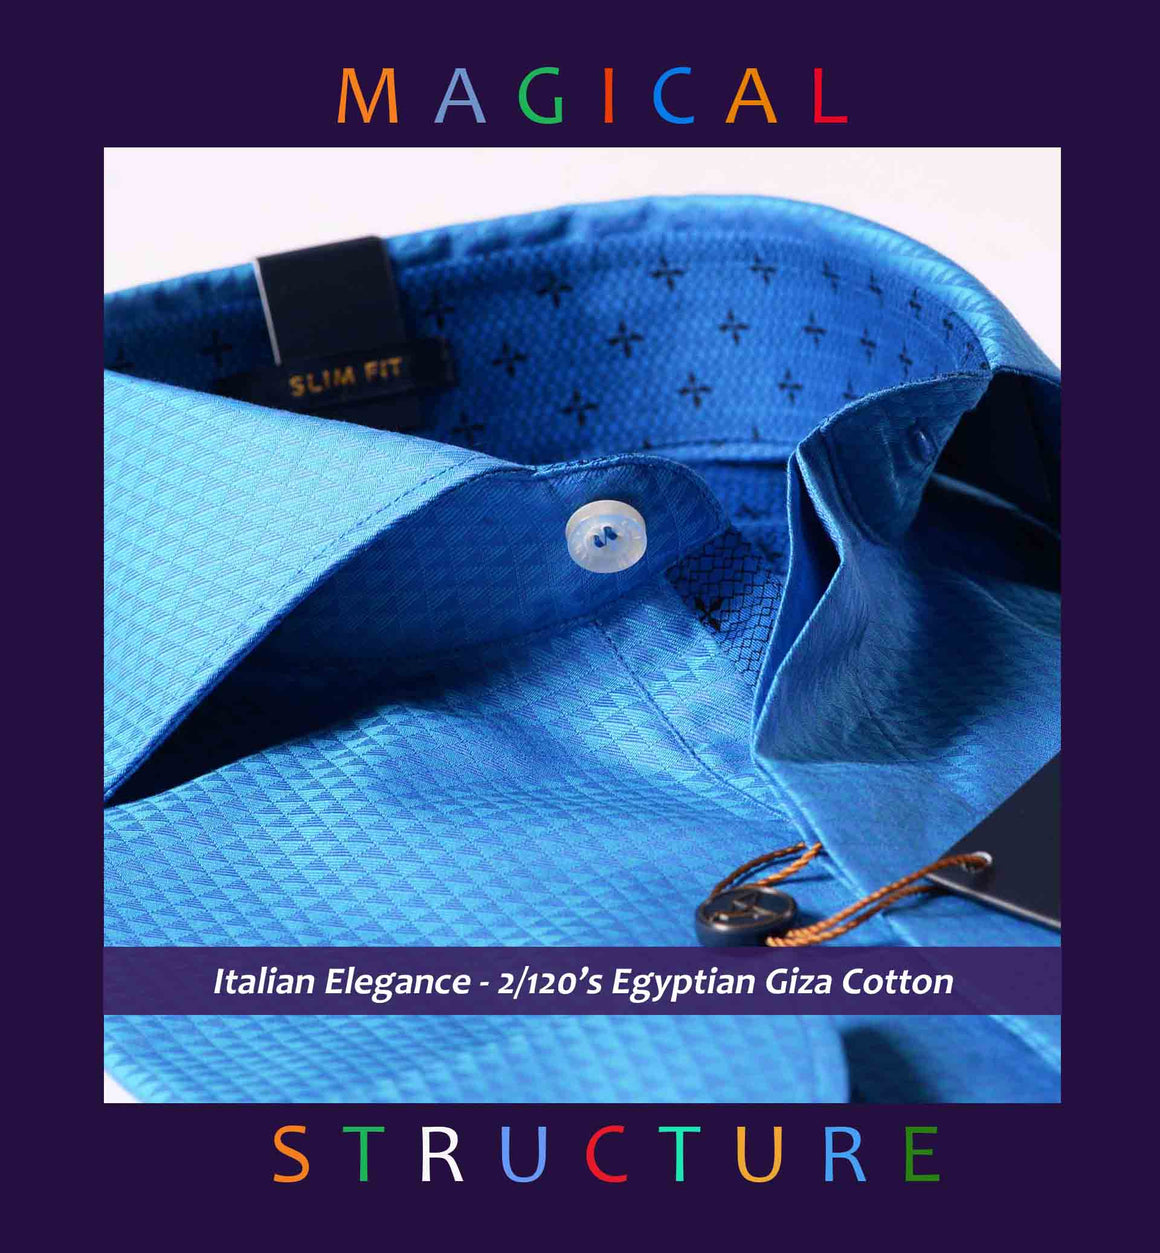 Durham- Magical Royal Blue Structure- 2/120 Egyptian Giza Cotton